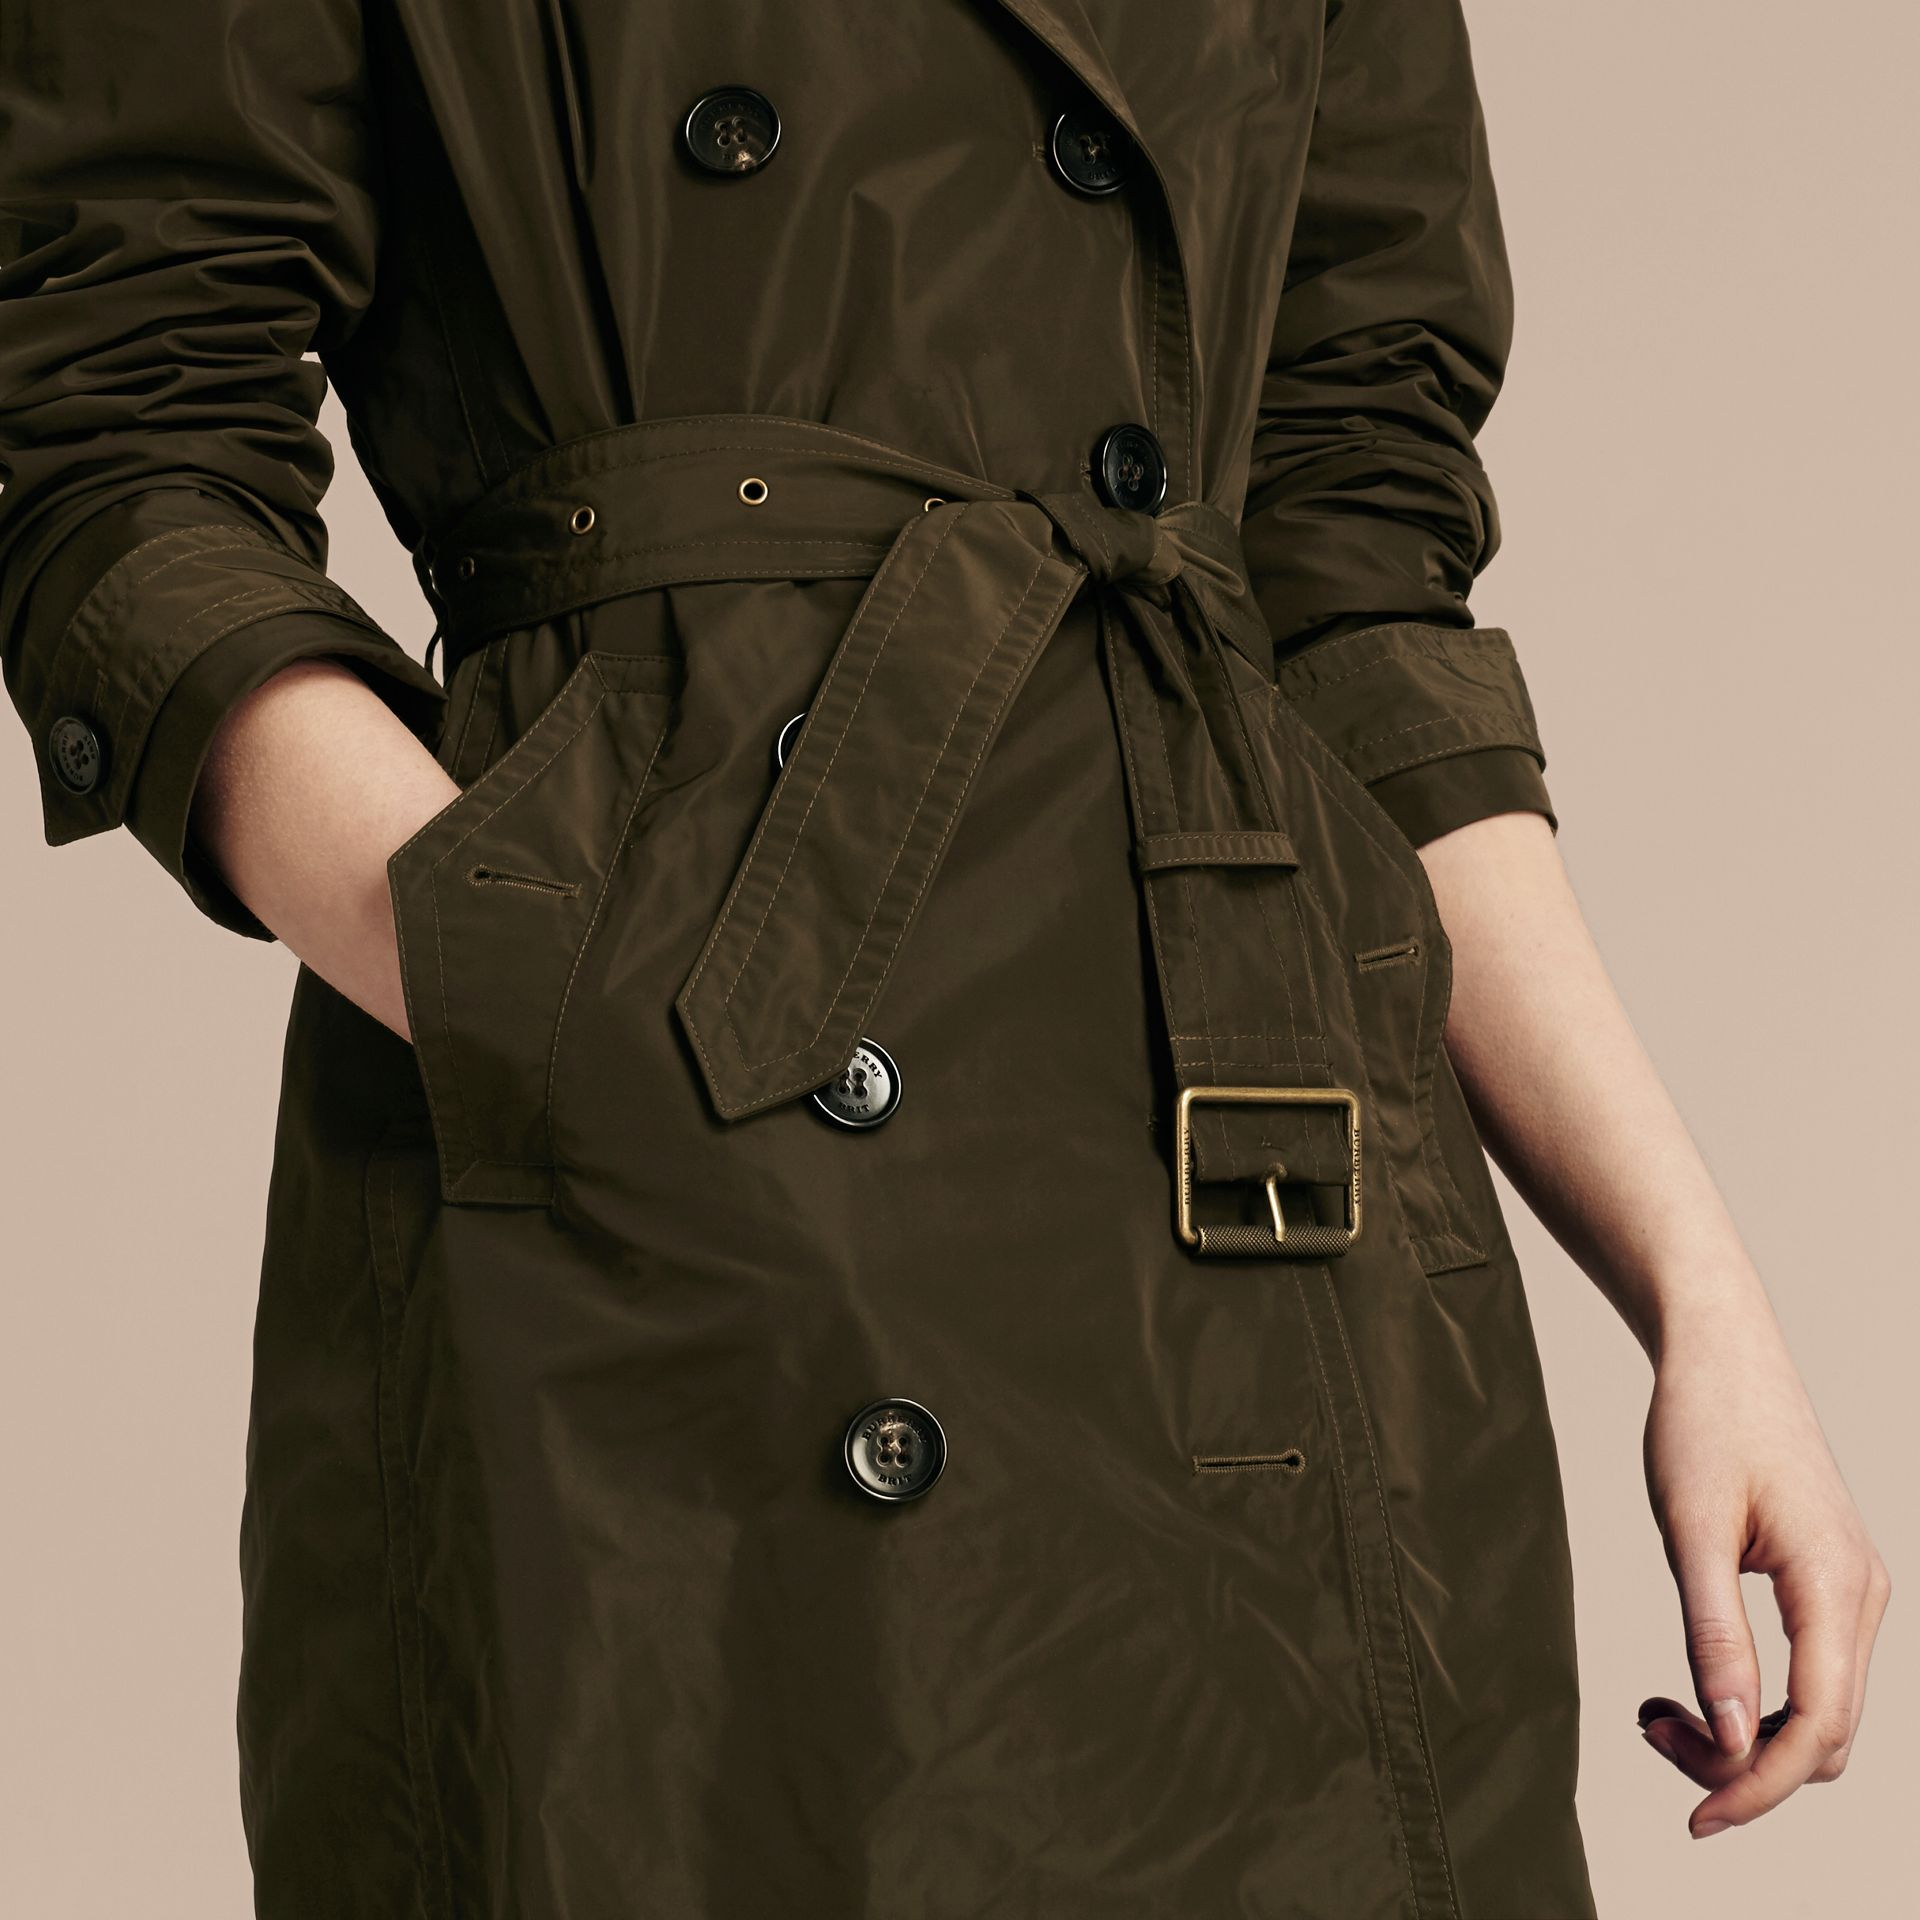 Taffeta Trench Coat with Detachable Hood in Dark Olive - Women | Burberry - gallery image 4